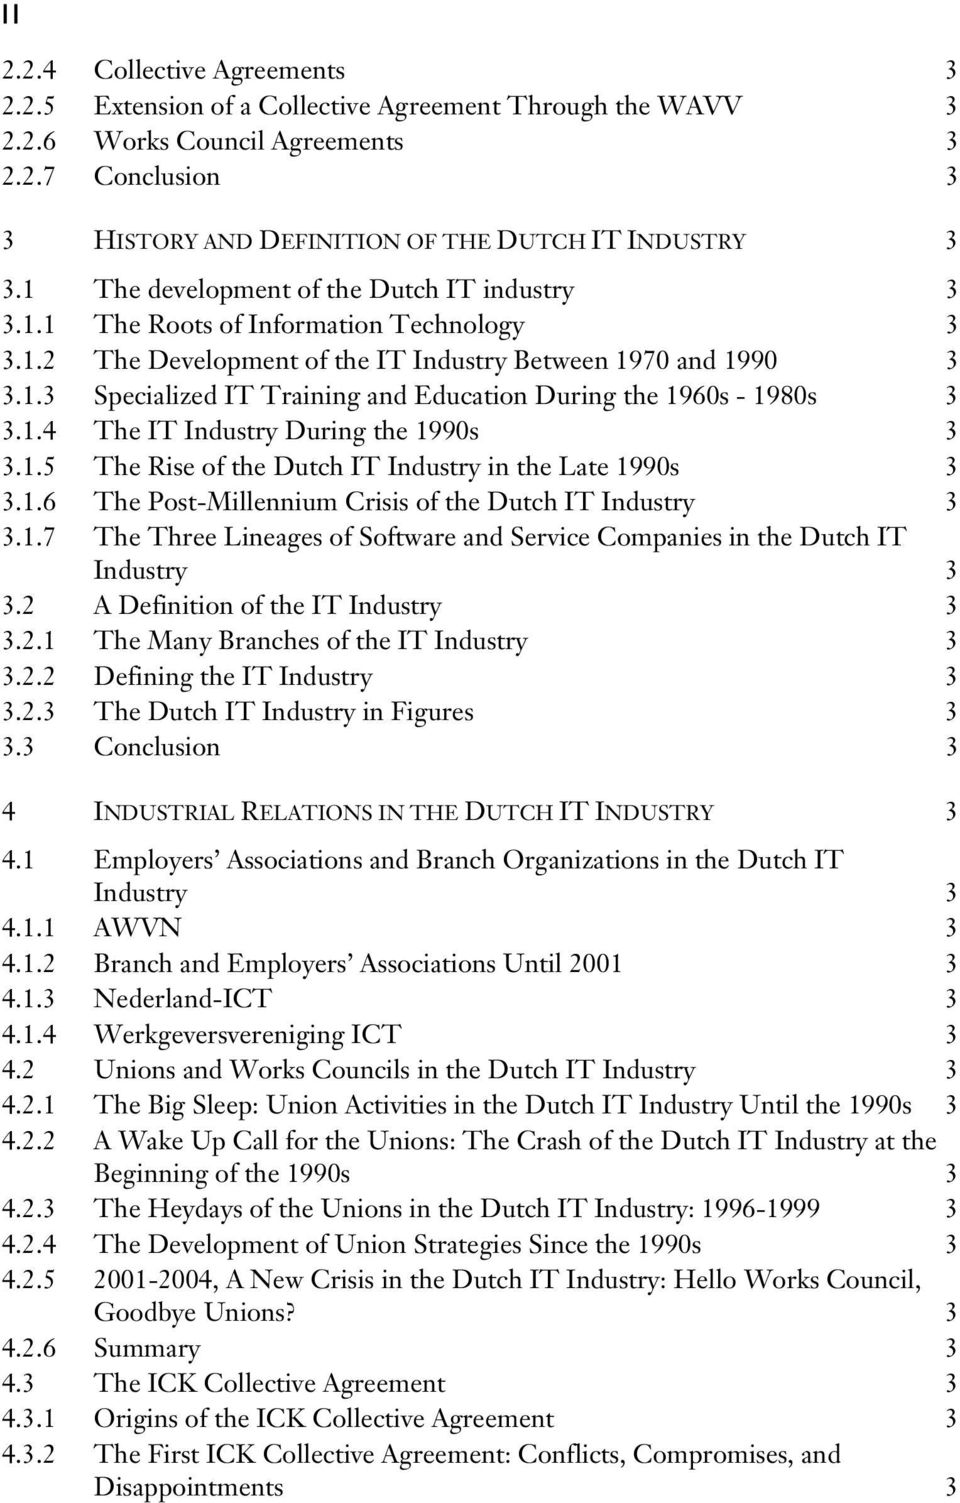 1.4 The IT Industry During the 1990s 3 3.1.5 The Rise of the Dutch IT Industry in the Late 1990s 3 3.1.6 The Post-Millennium Crisis of the Dutch IT Industry 3 3.1.7 The Three Lineages of Software and Service Companies in the Dutch IT Industry 3 3.